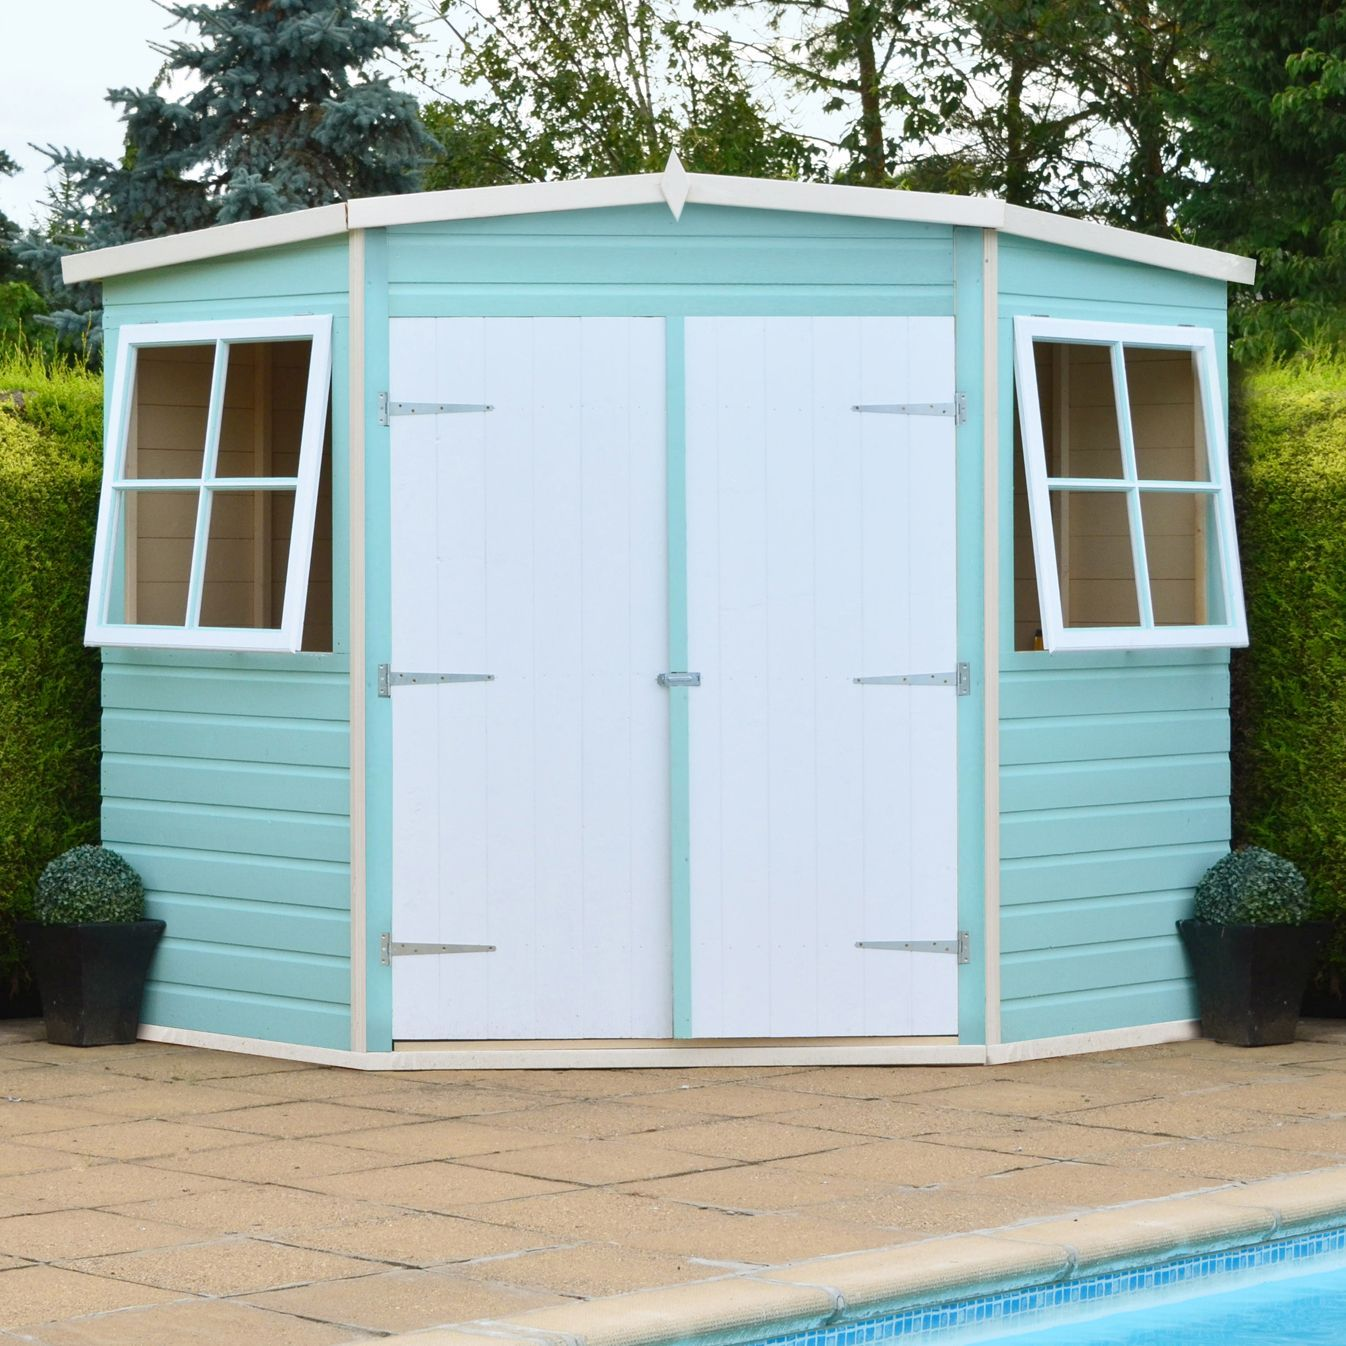 7x7 corner pent shiplap wooden shed with assembly service departments diy at bq - Corner Garden Sheds 7x7